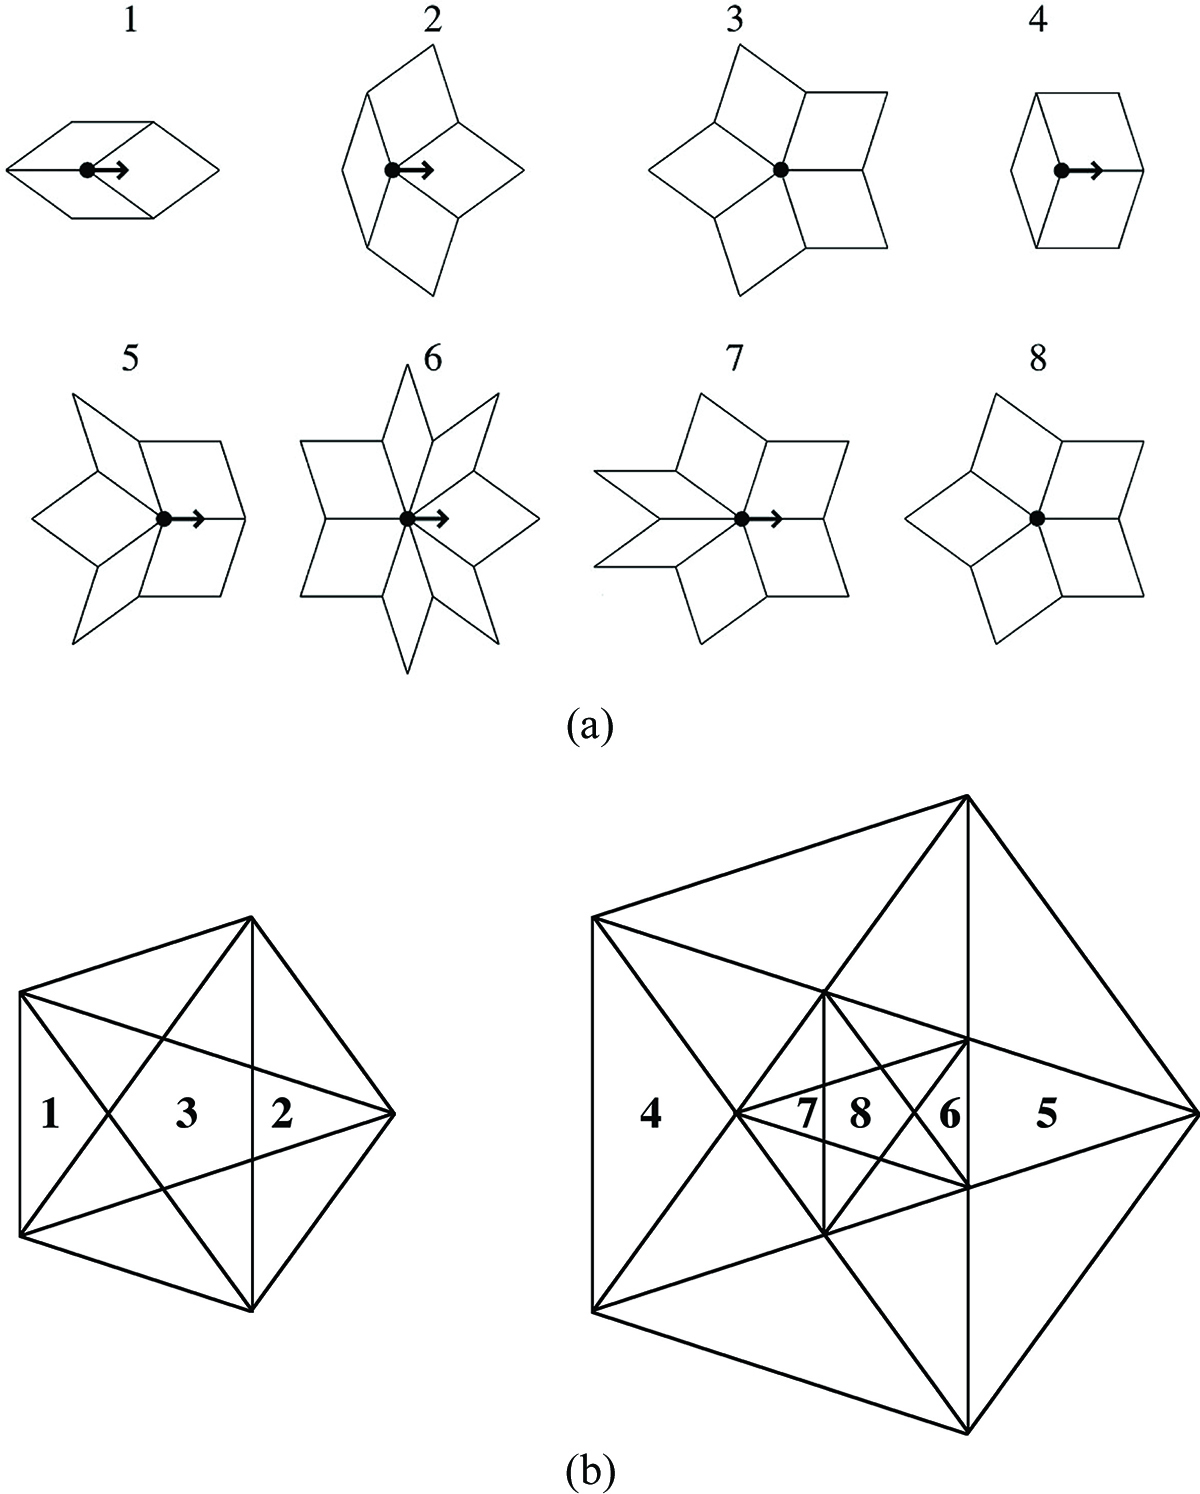 [Fig. 2 quasicrystals]